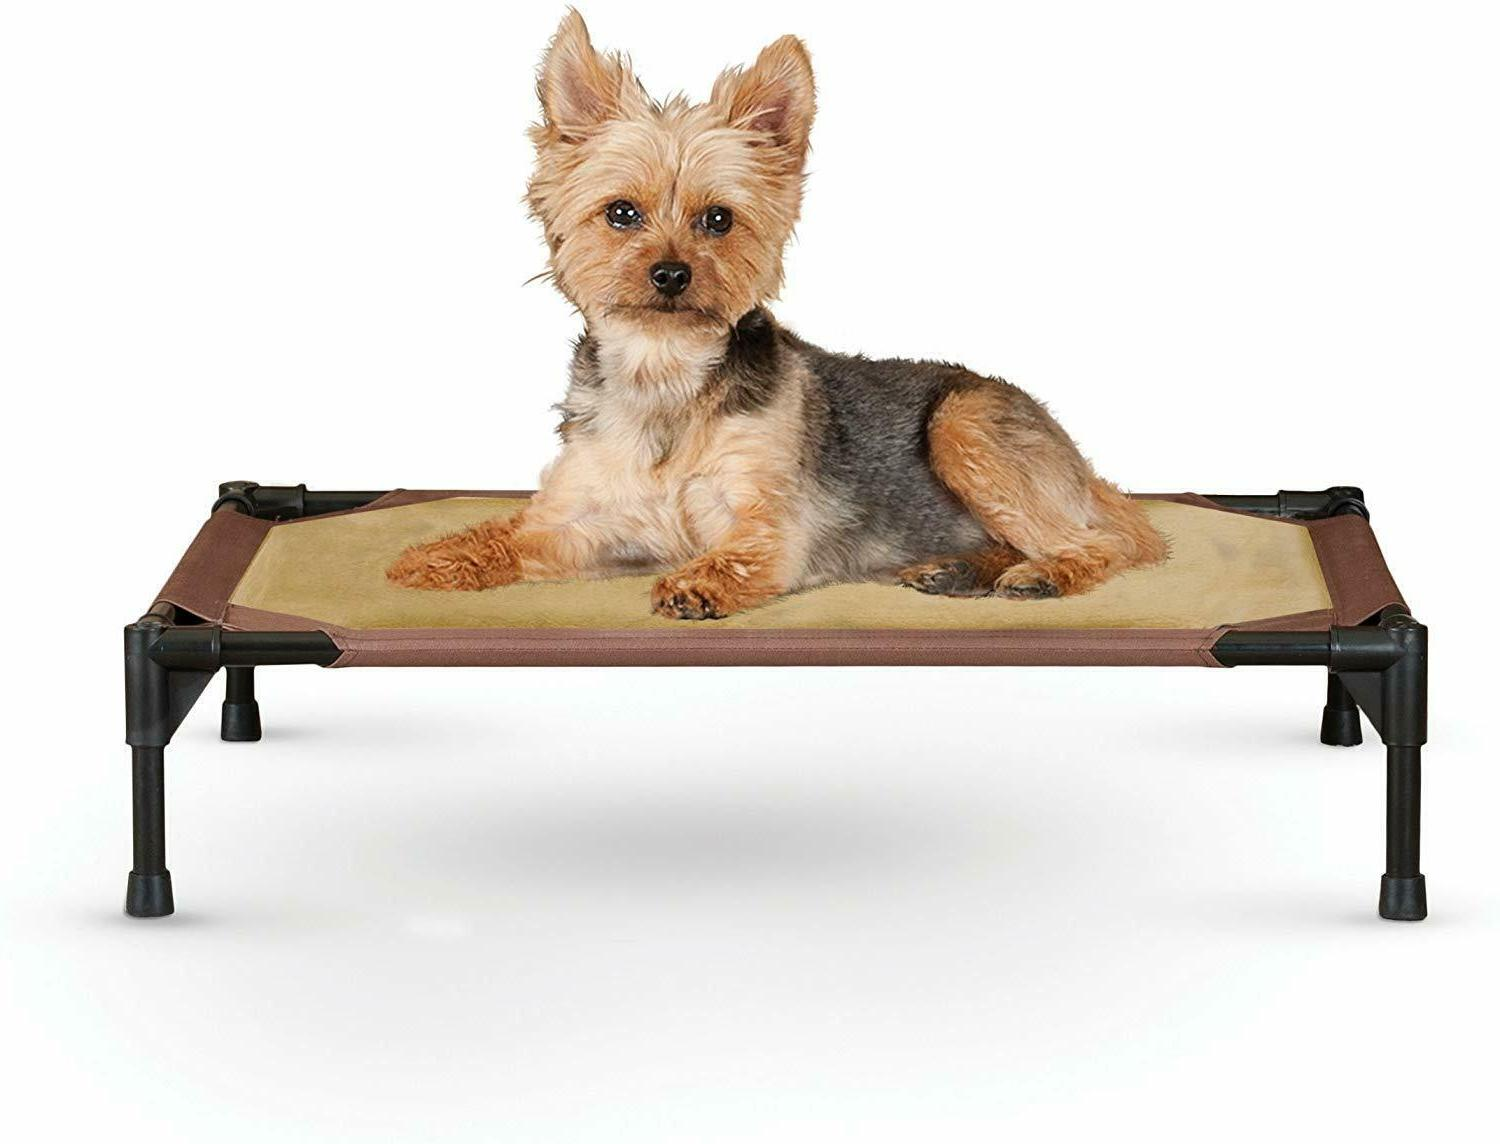 Super Comfy Elevated Pet Bed for Cats or Small Dogs Chocolat